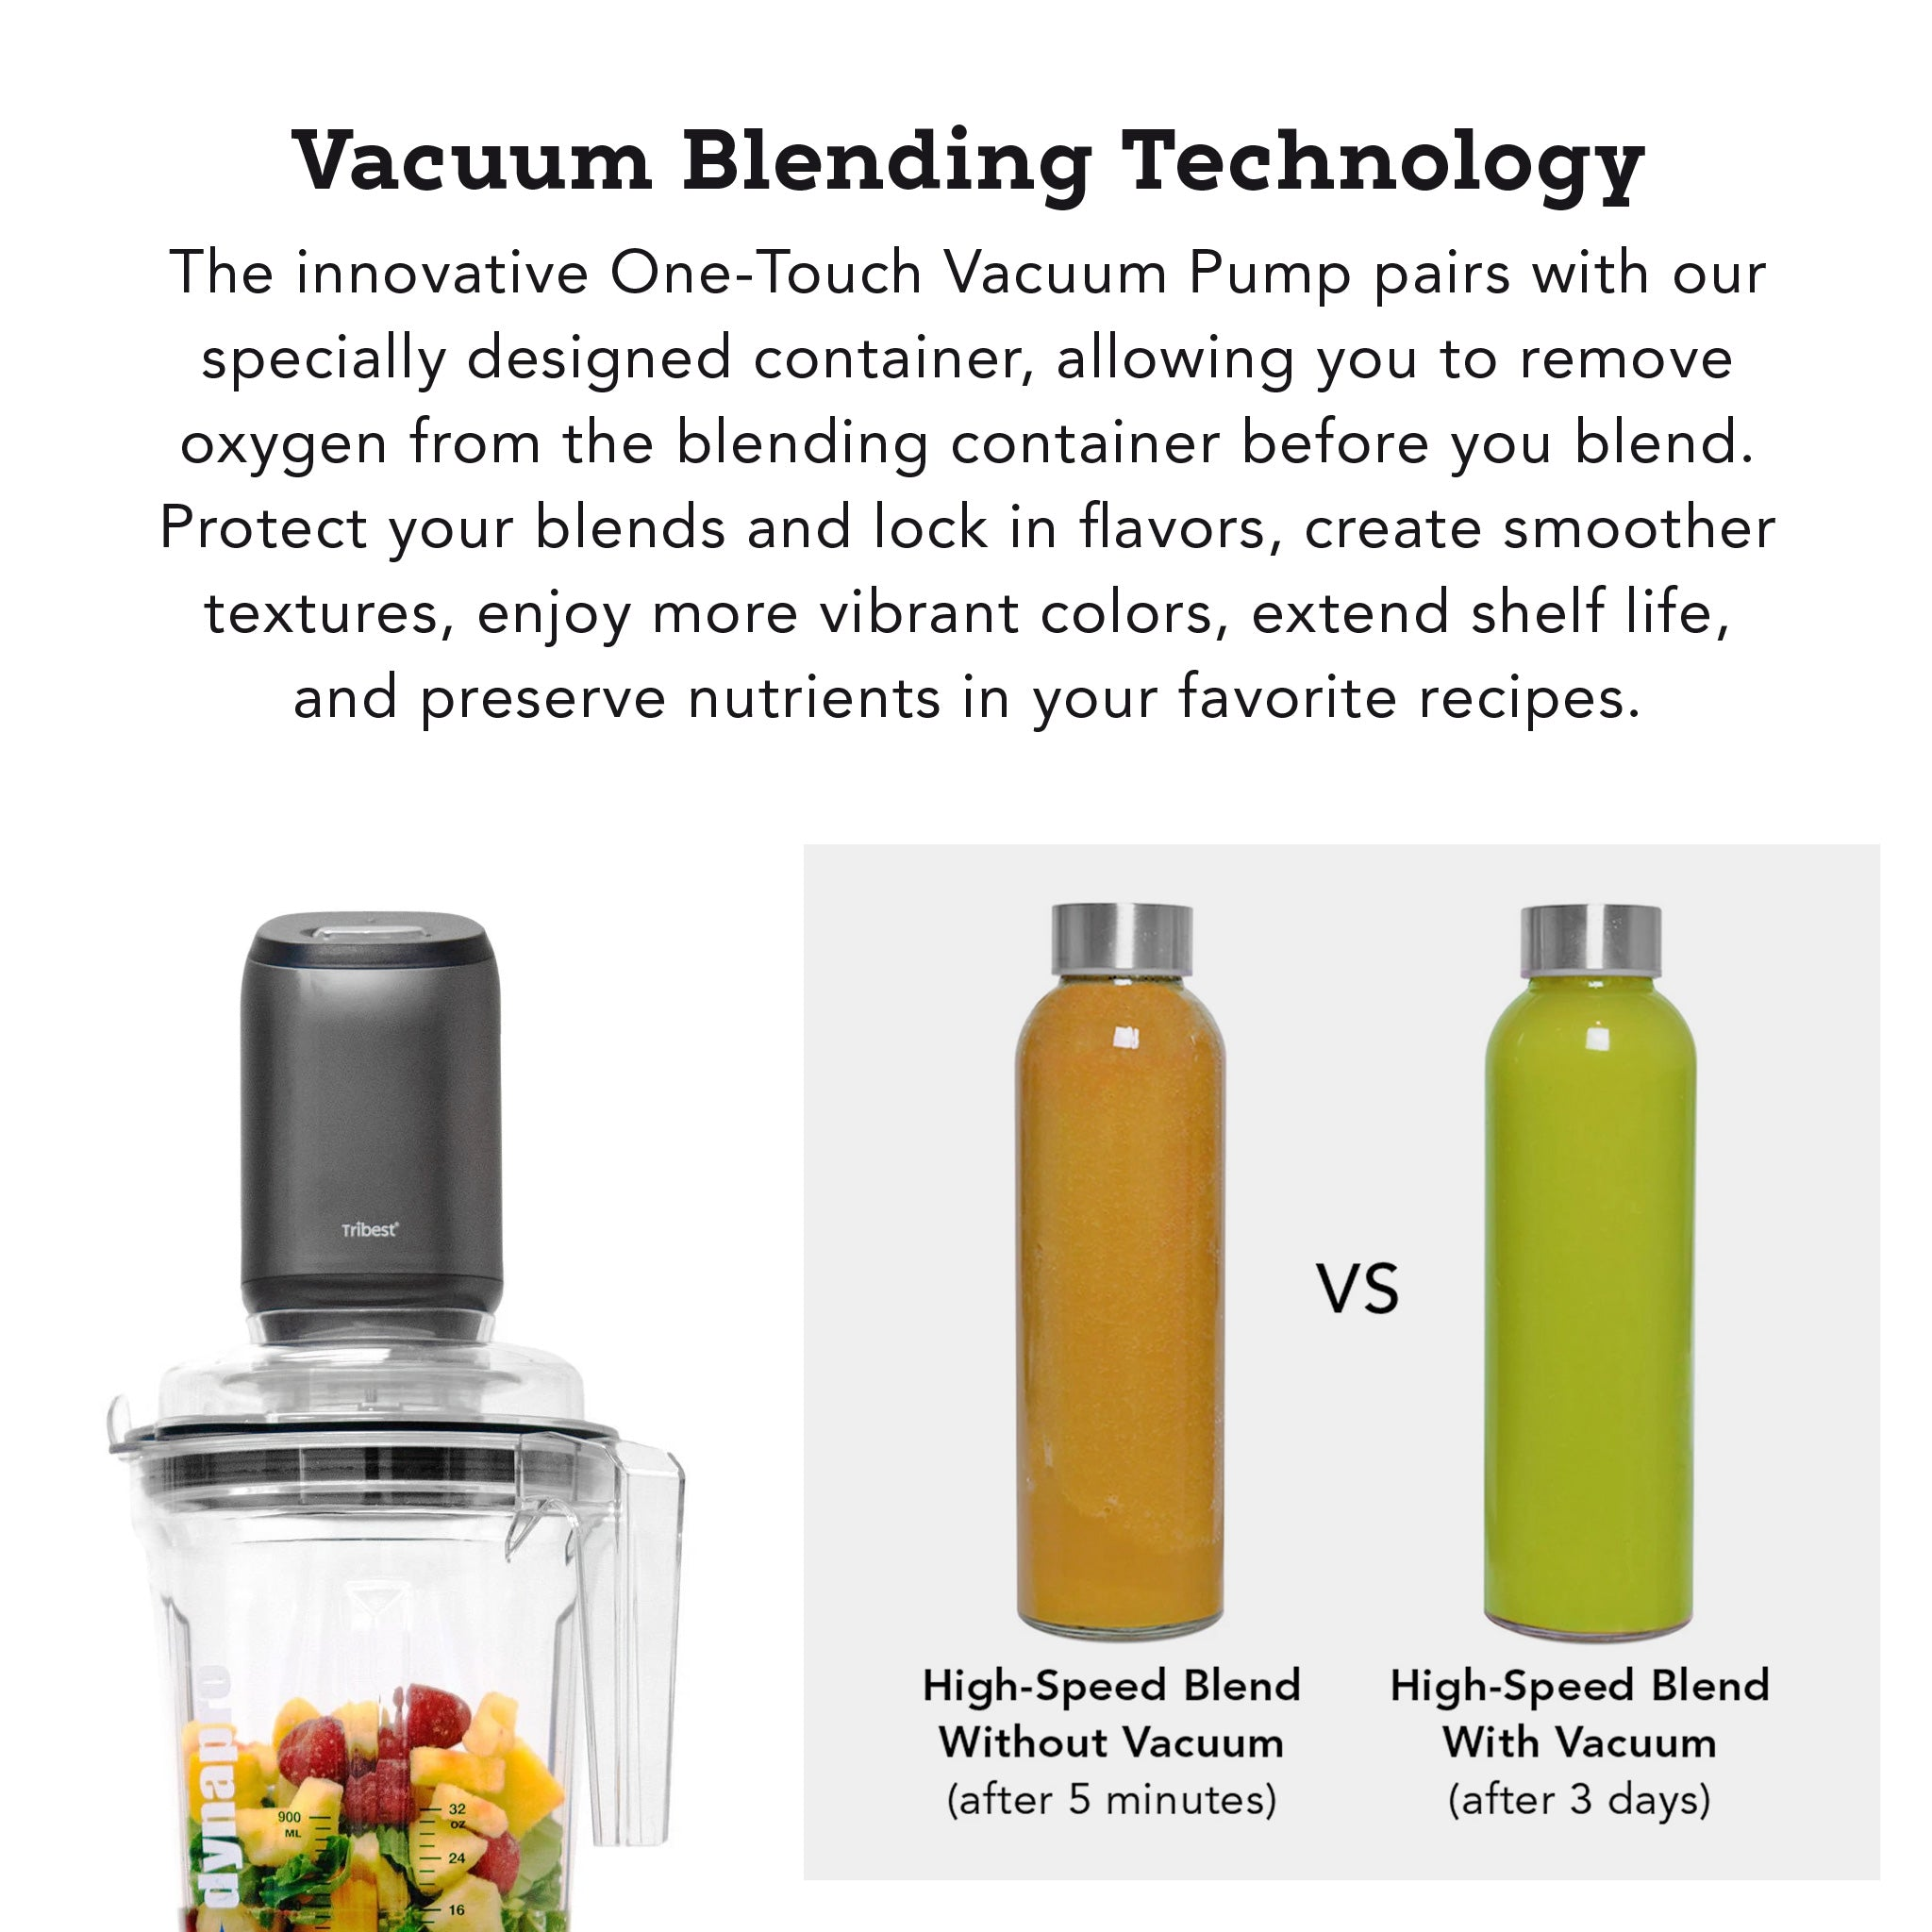 Dynapro® Commercial High-Speed Vacuum Blender in Gray - Vacuum Blending Technology